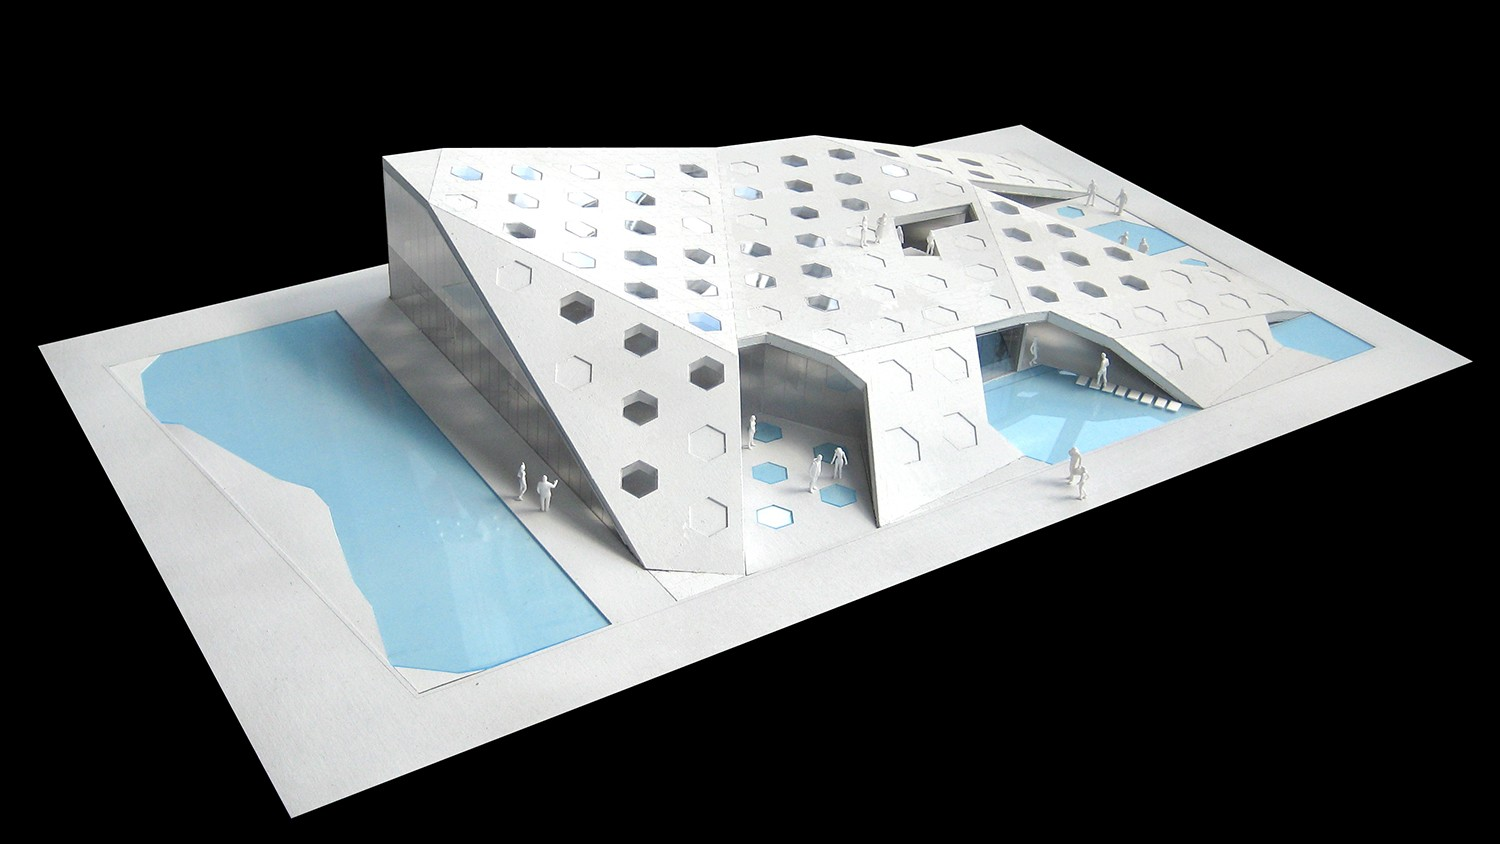 https://stevenholl.sfo2.digitaloceanspaces.com/uploads/projects/project-images/StevenHollArchitects_HangzhouTriax_IMG_5454_WH.jpg